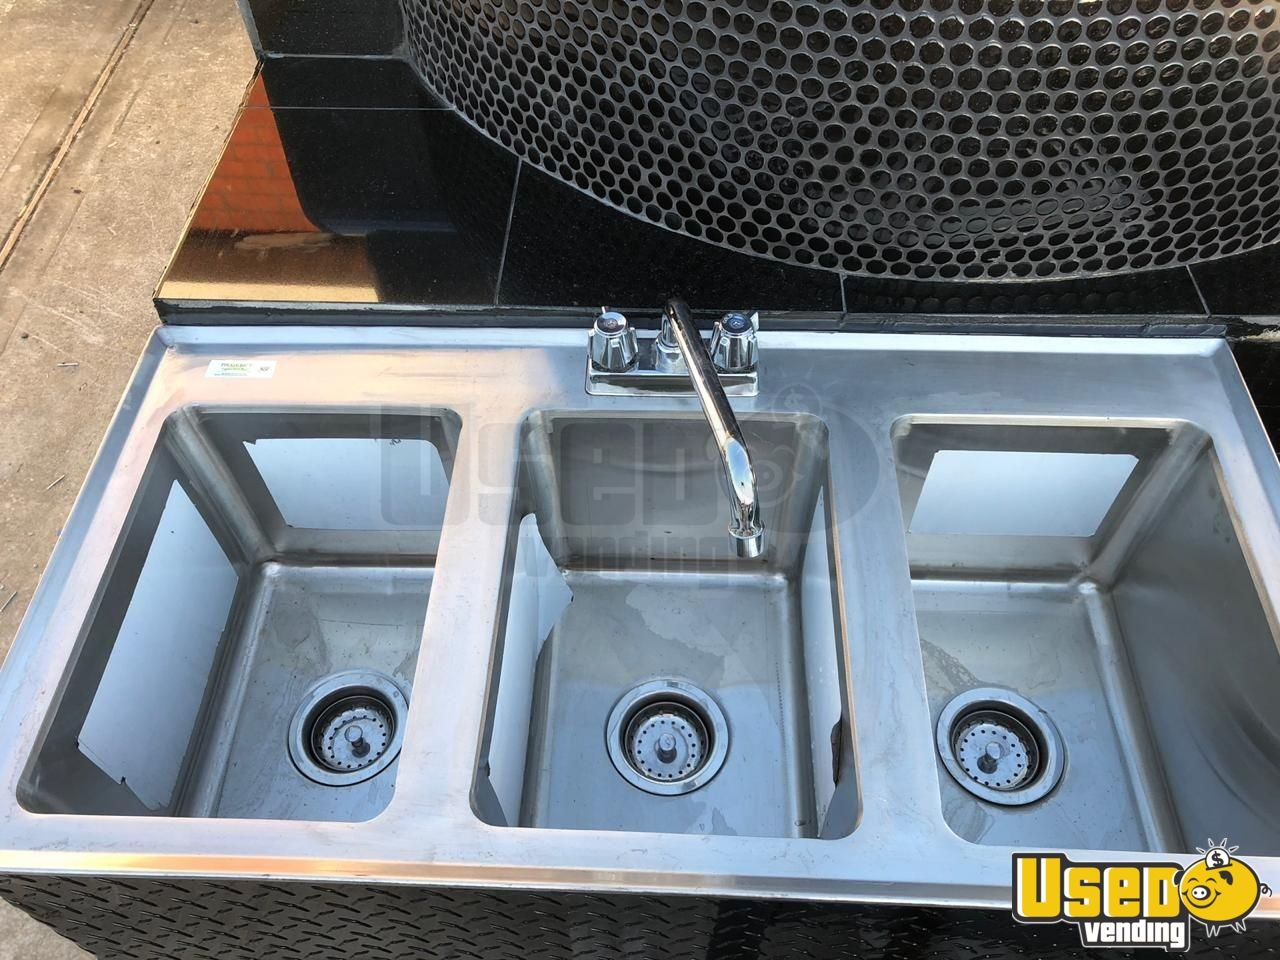 2018 Homemade Pizza Trailer Hand-washing Sink Florida for Sale - 6